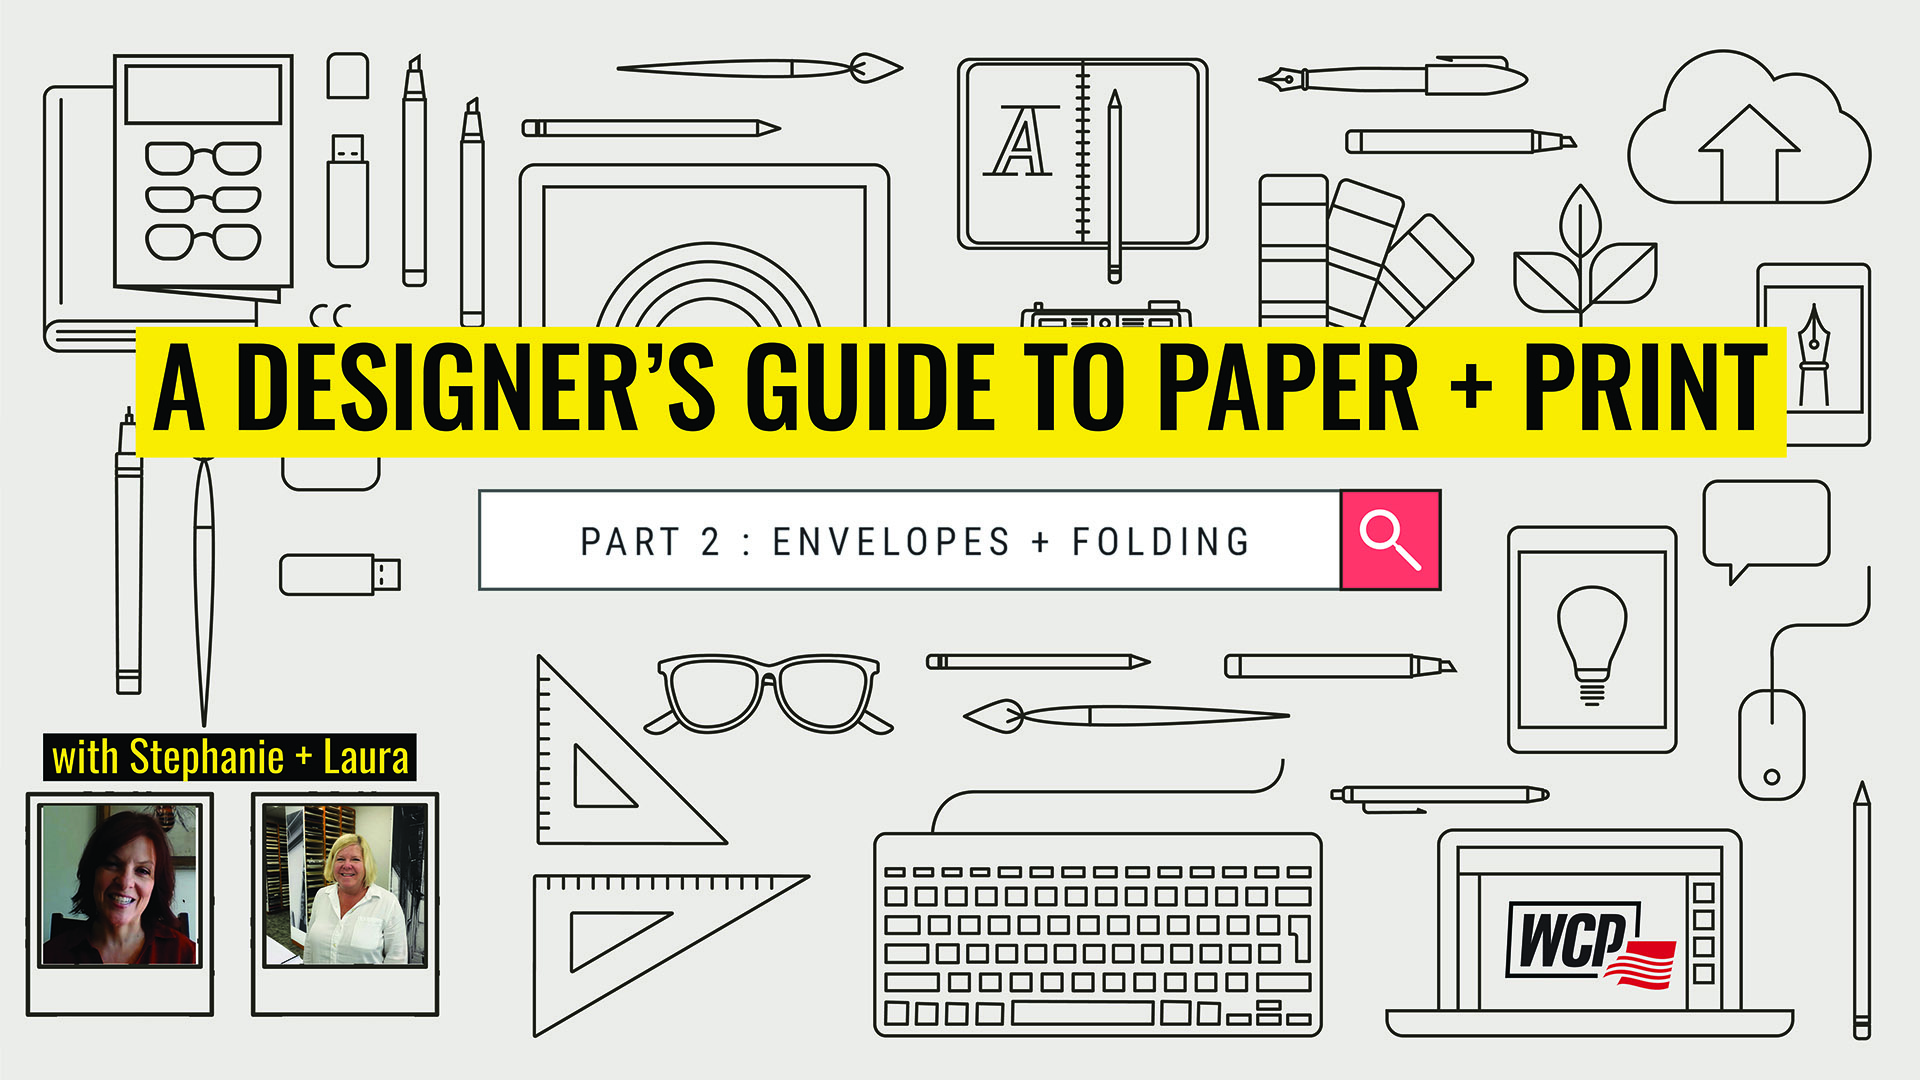 A Designers Guide to Paper and Print - Part 2